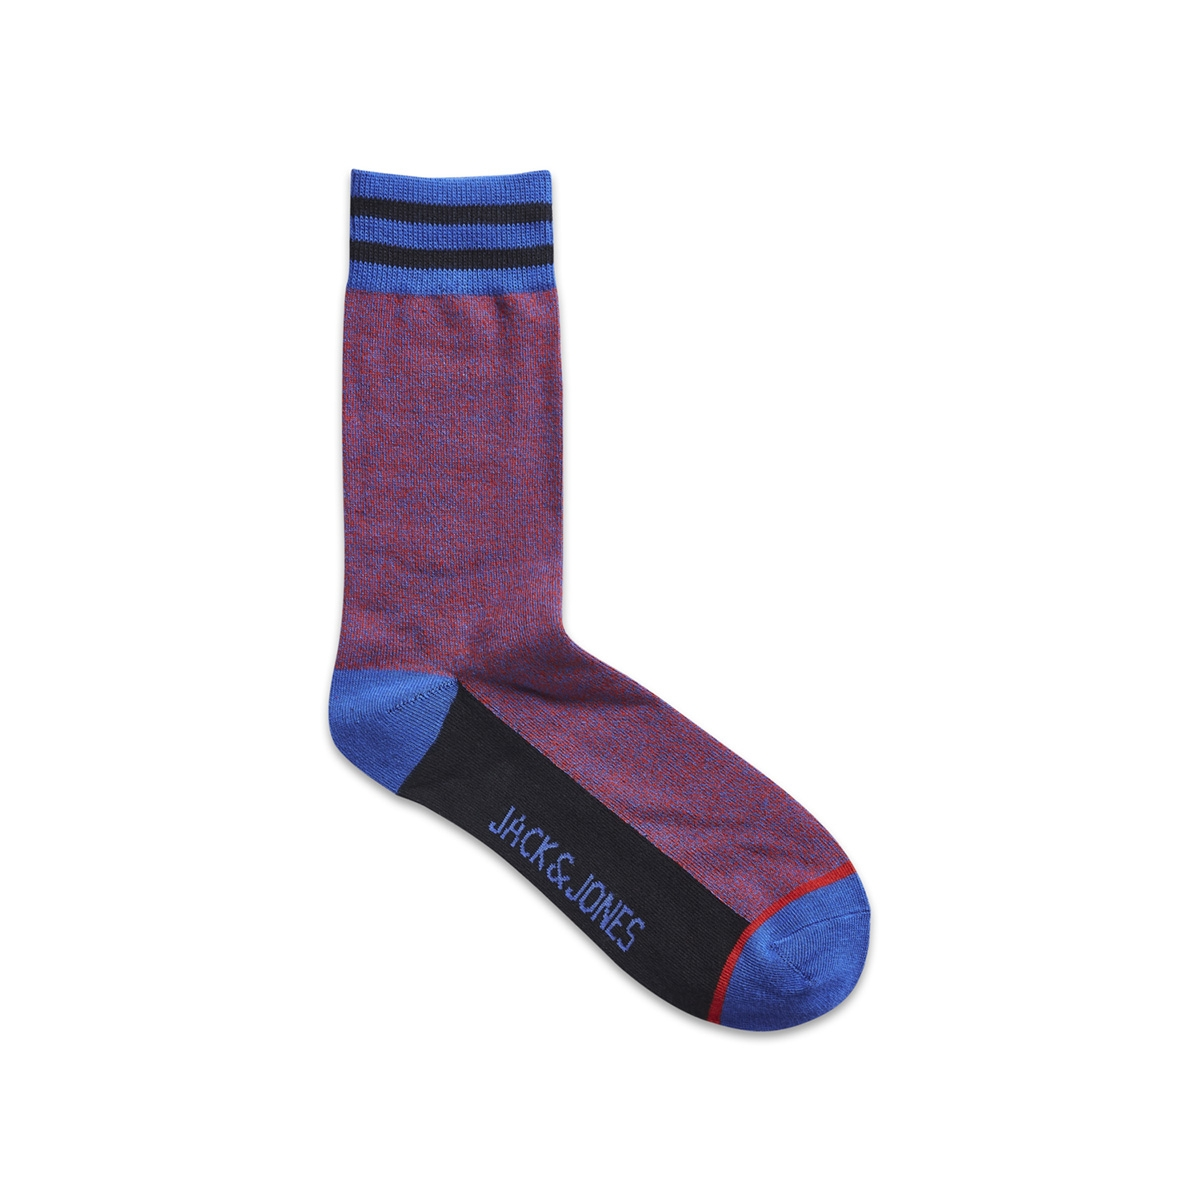 jacblend socks 12161819 jack & jones accessoire fiery red